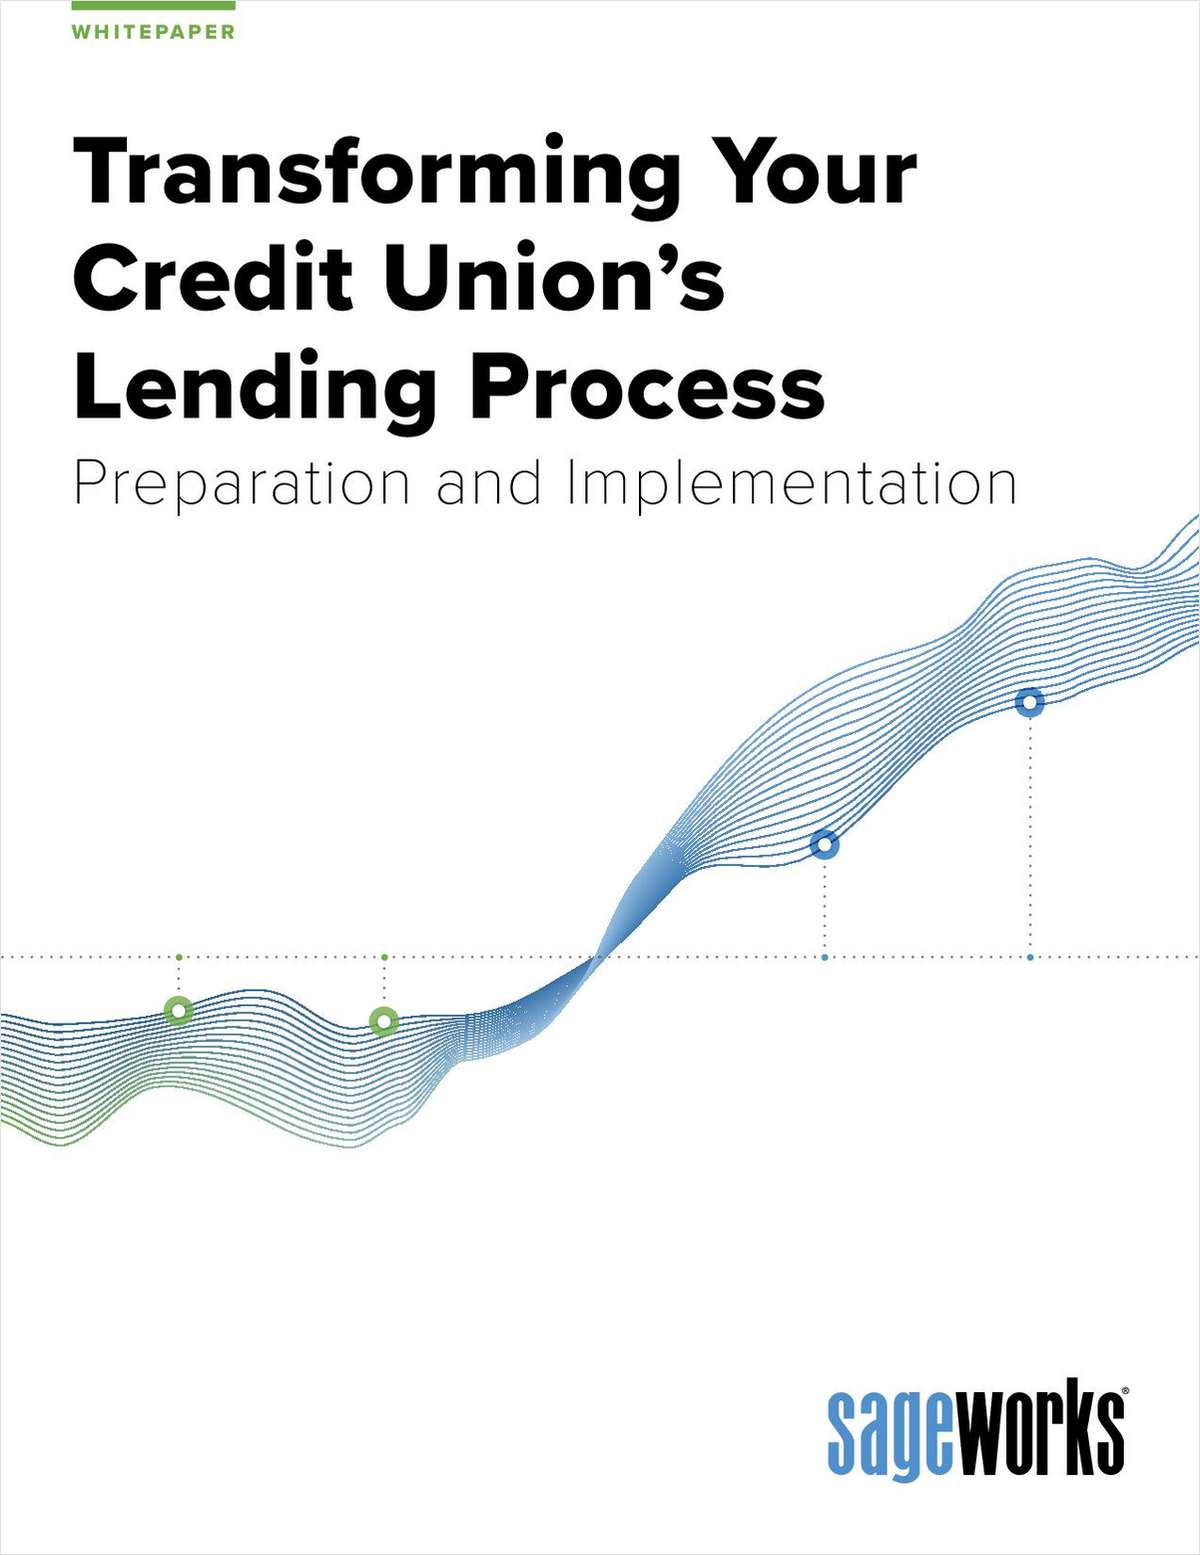 How to Transform Your Credit Union's Lending Process